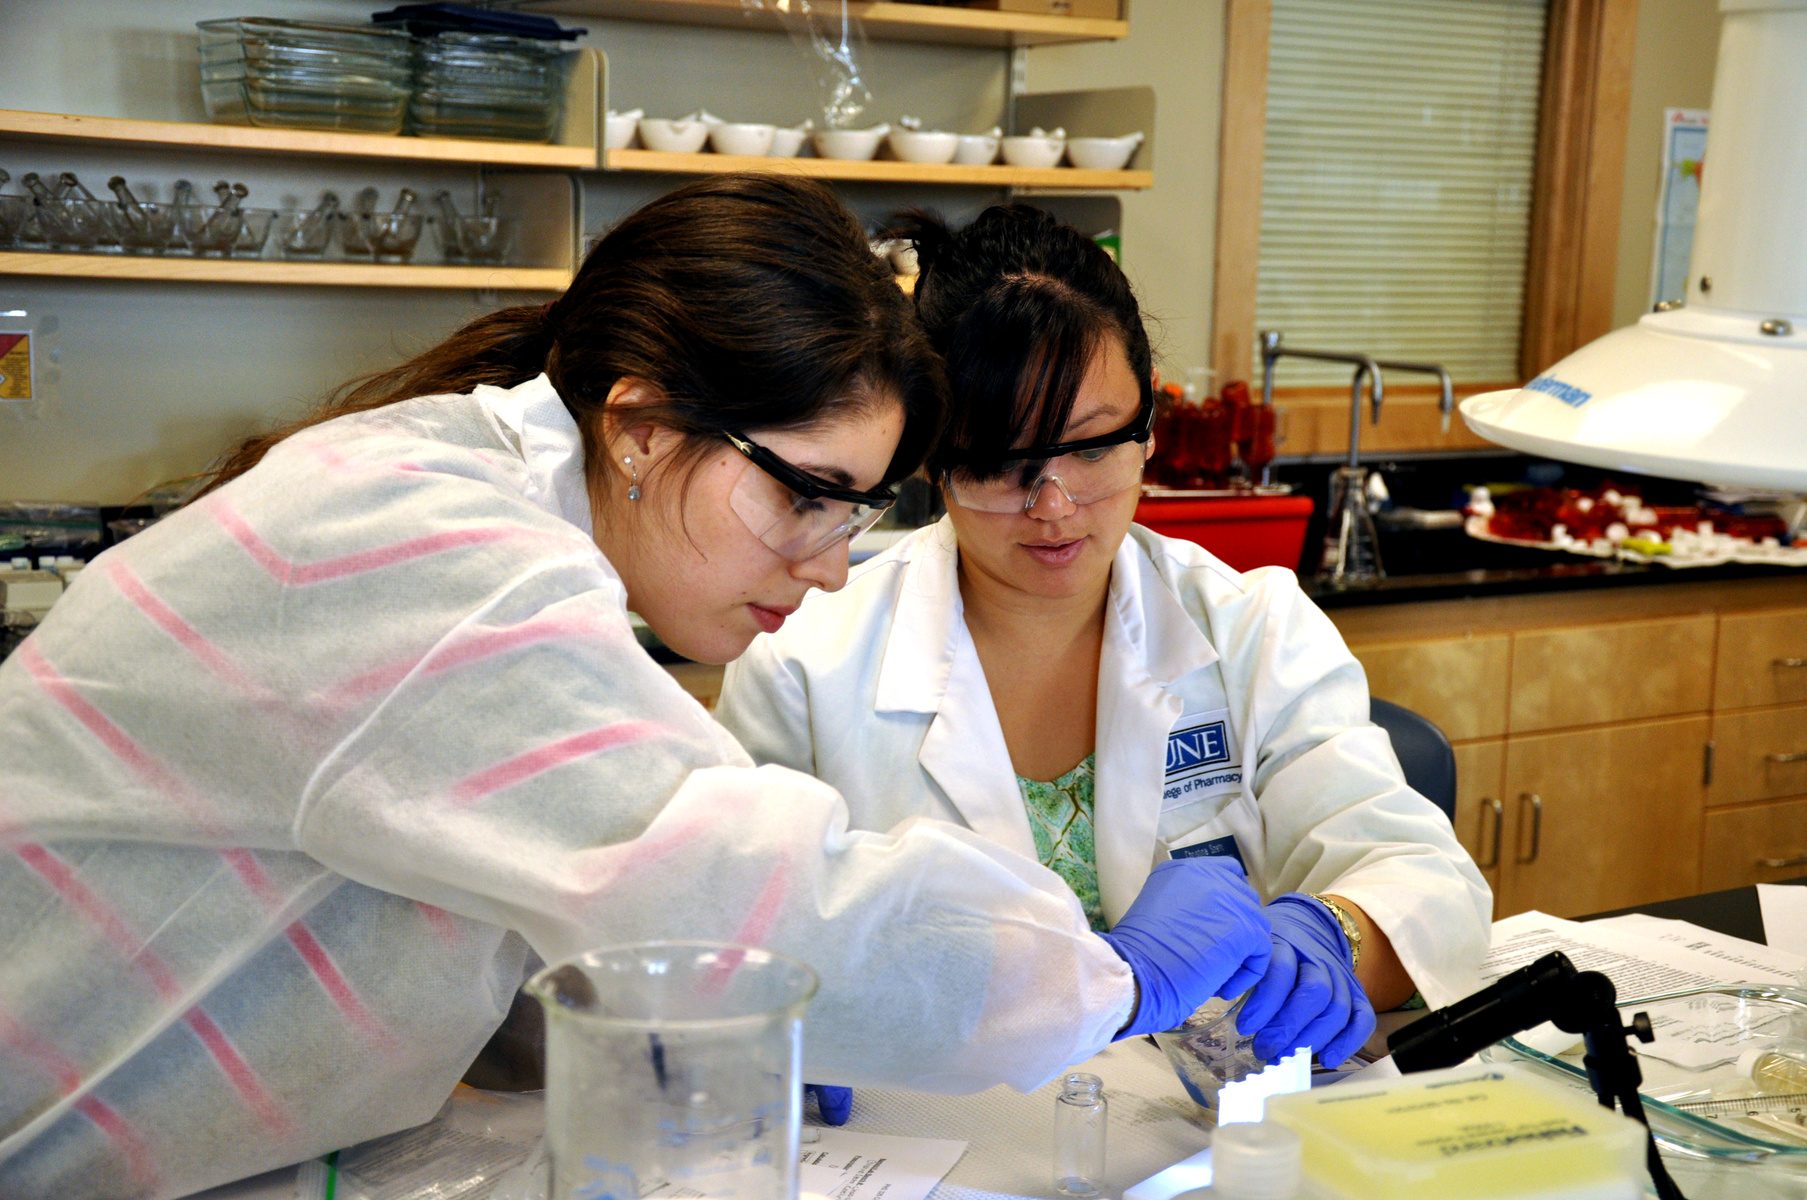 Two female students work together in a lab